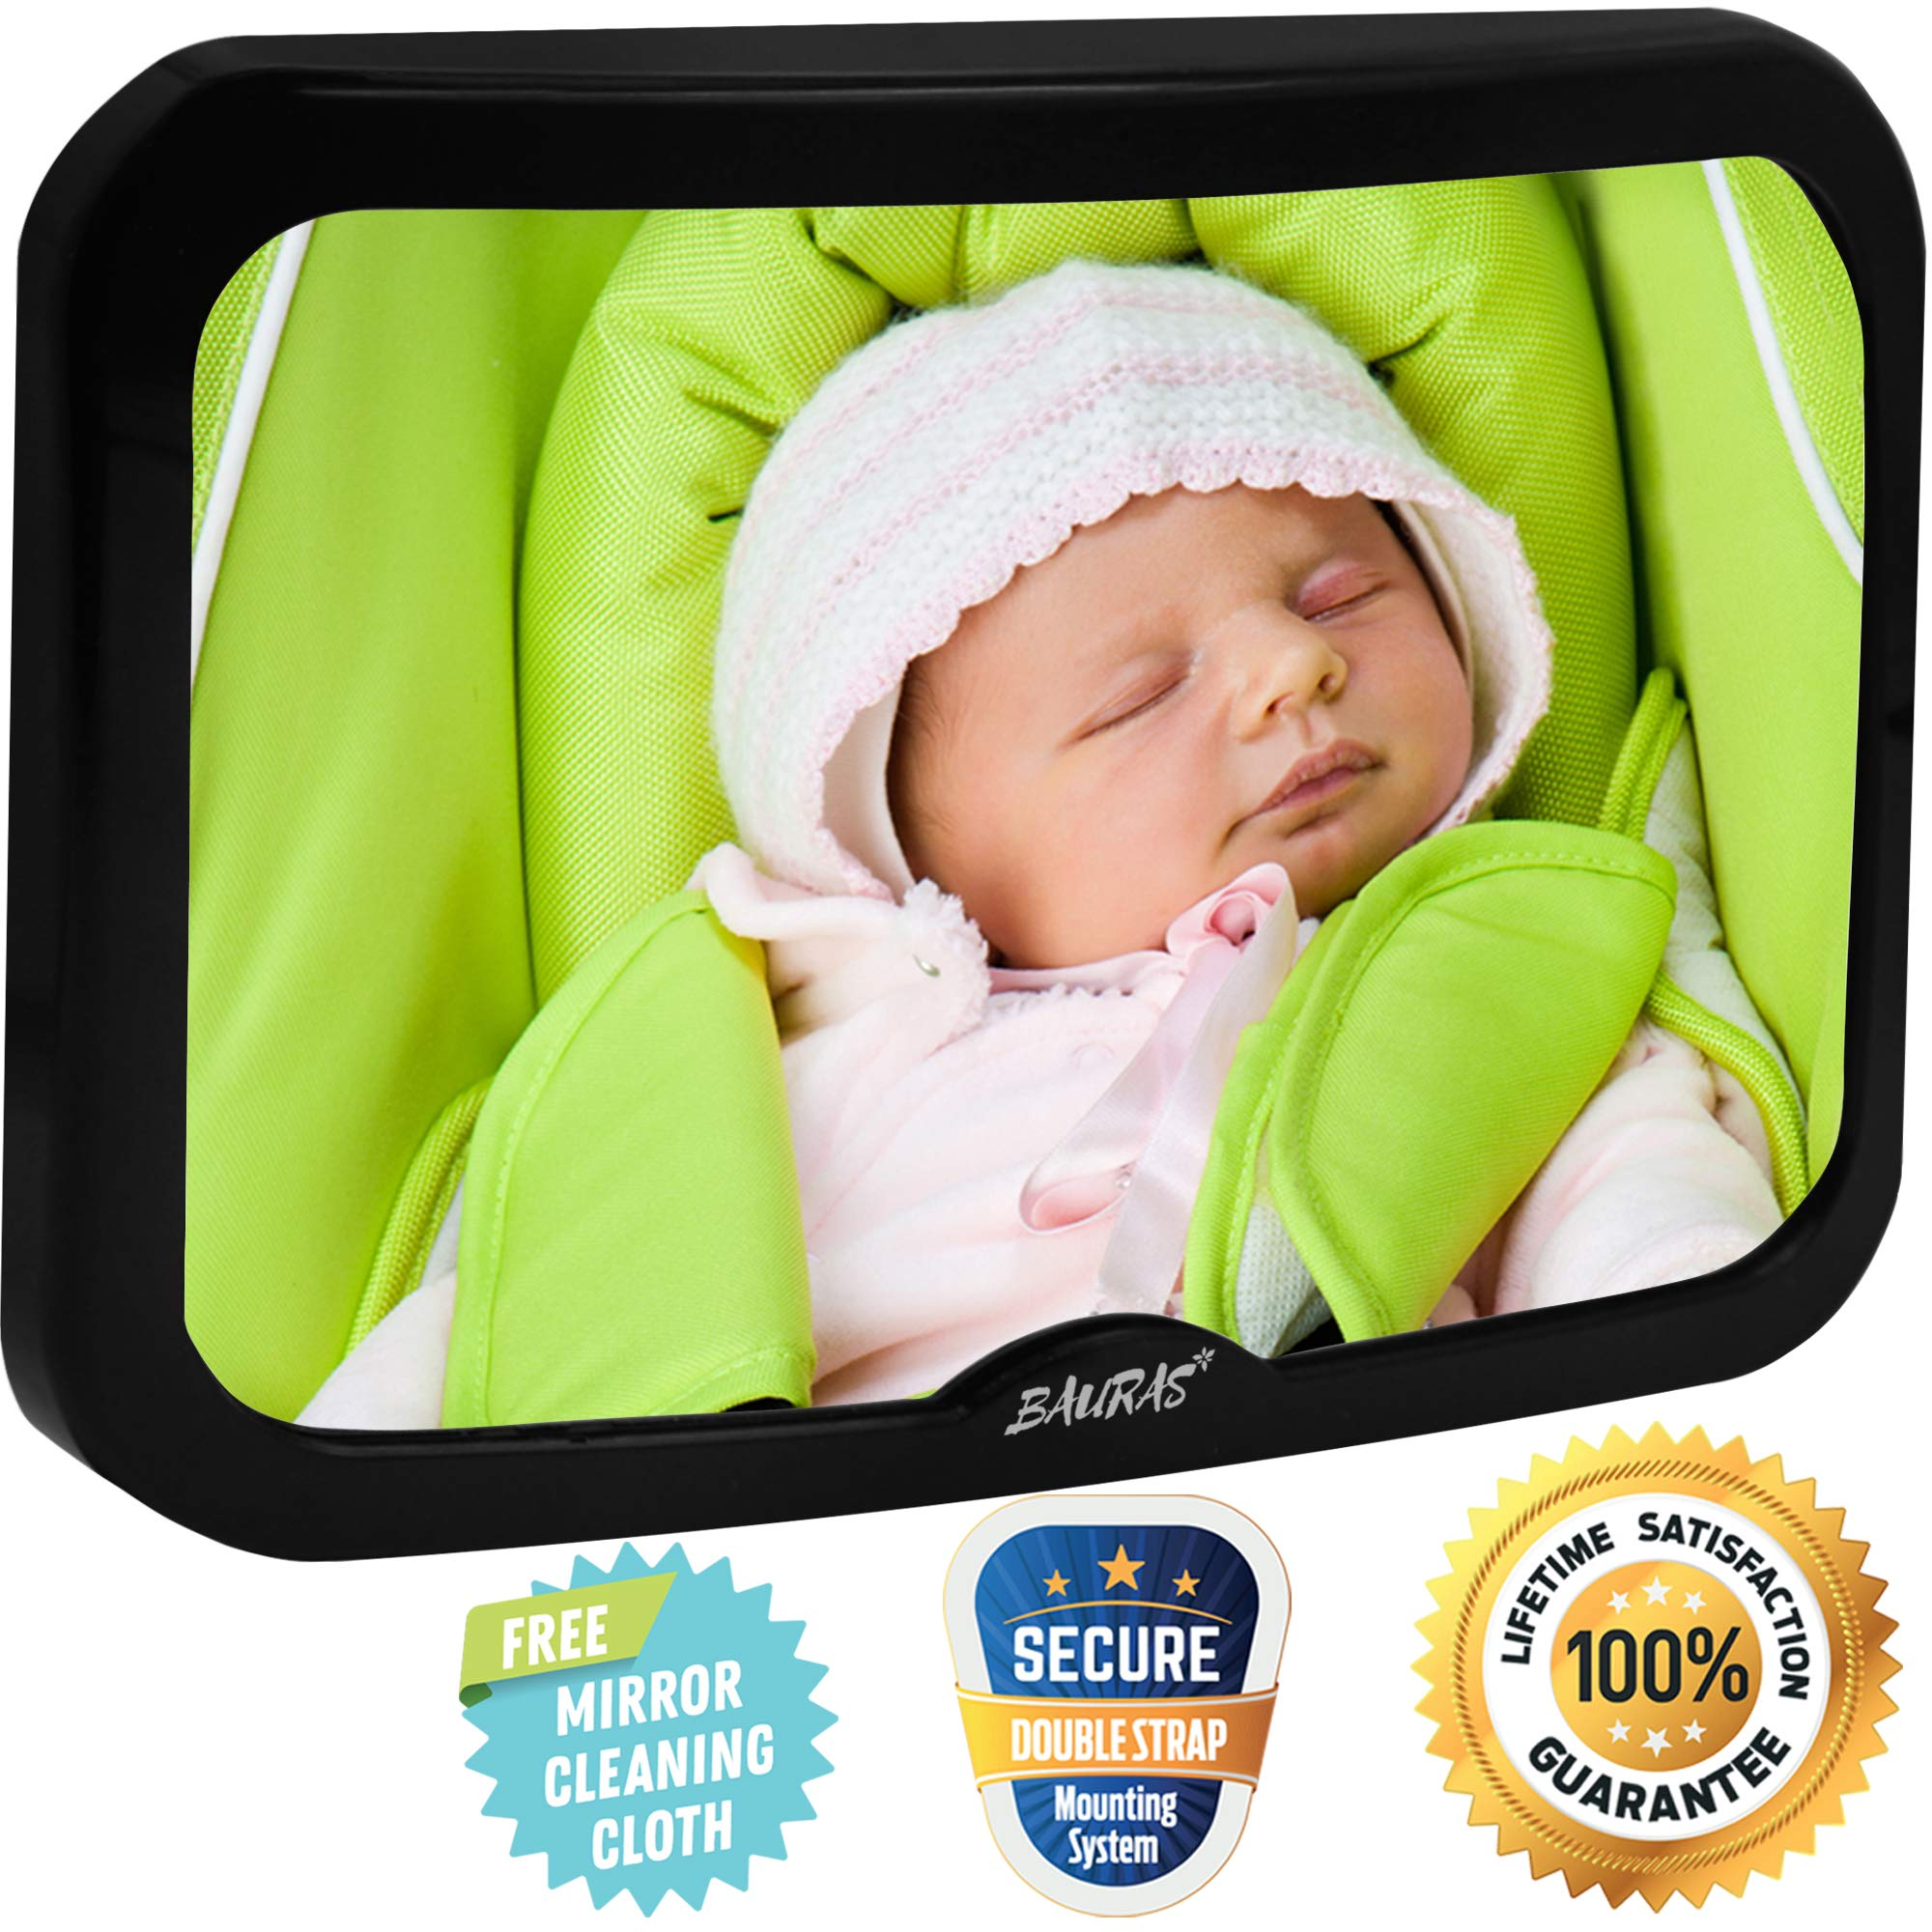 Baby Mirror for Car - Largest Backseat Mirror for Rear Facing Infant - Most Stable Shatterproof Newborn Accessories for Back Seat - Wide Crystal Clear View - Premium Quality - Safe Secure Crash Tested by BAURAS